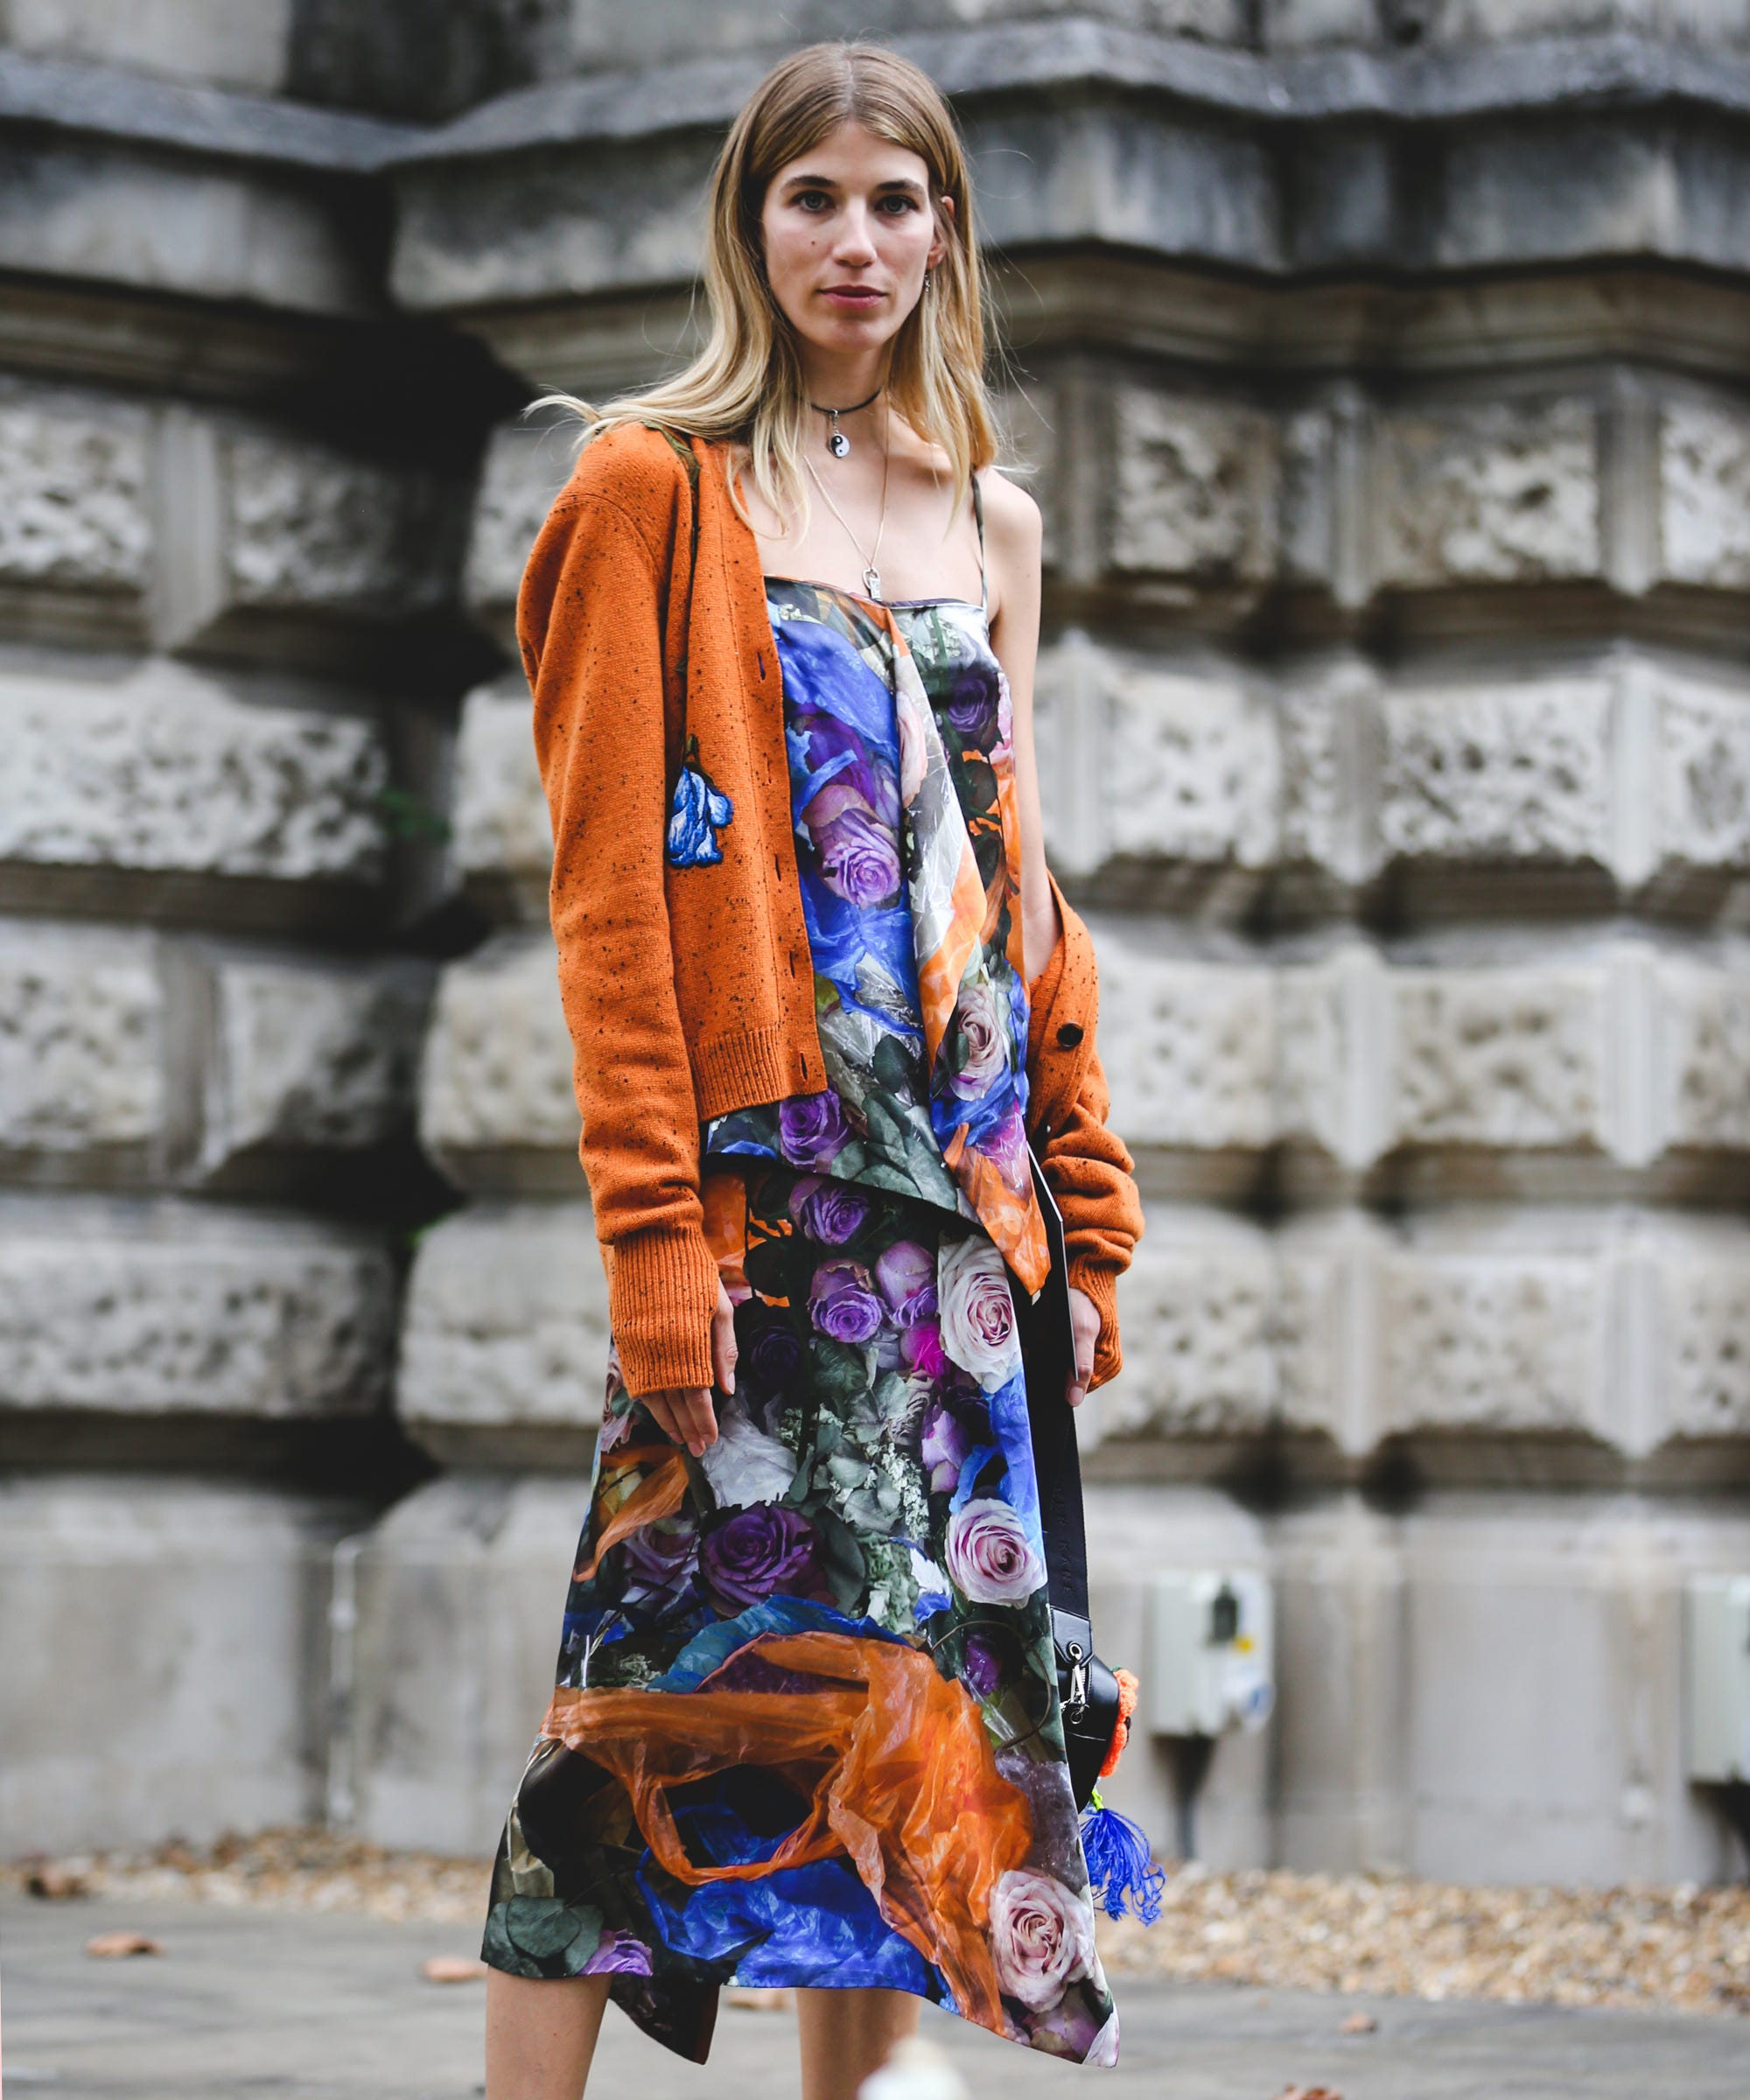 026e0b76beec Fall Outfit Inspiration - LFW Street Style Photos 2016